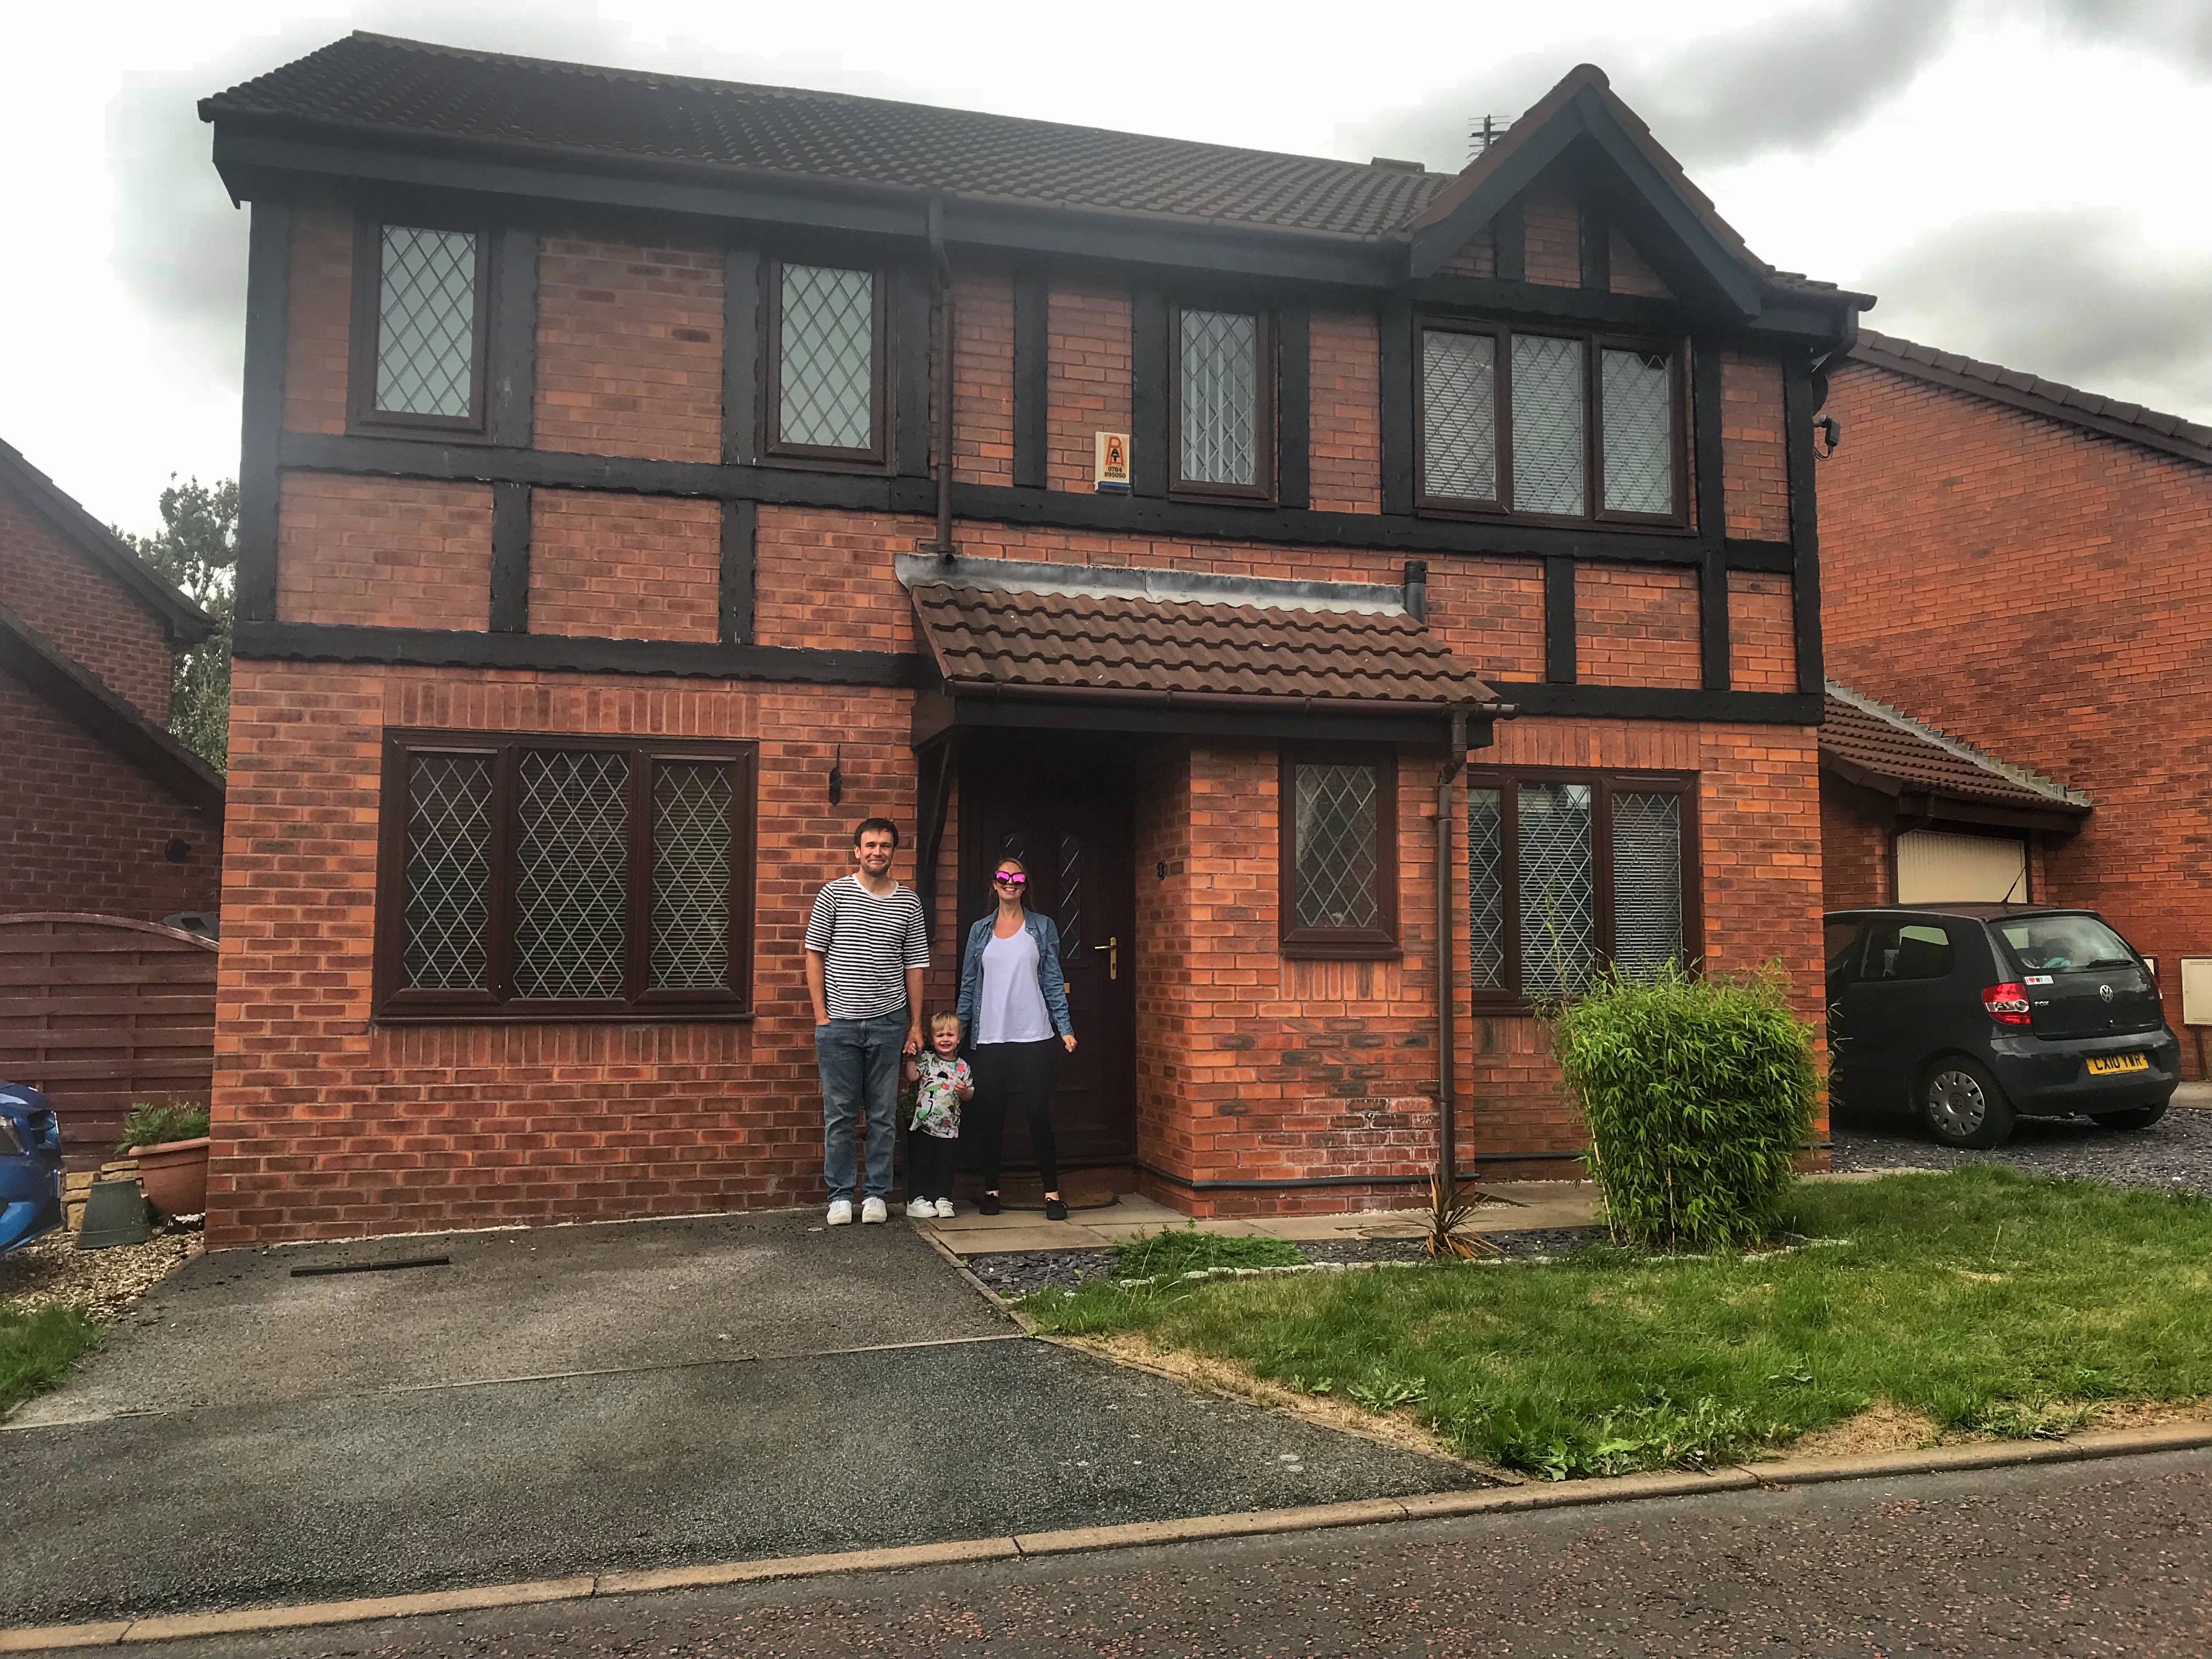 Nicola, her husband and toddler stood in front of their house - a four bed detached property with two driveways